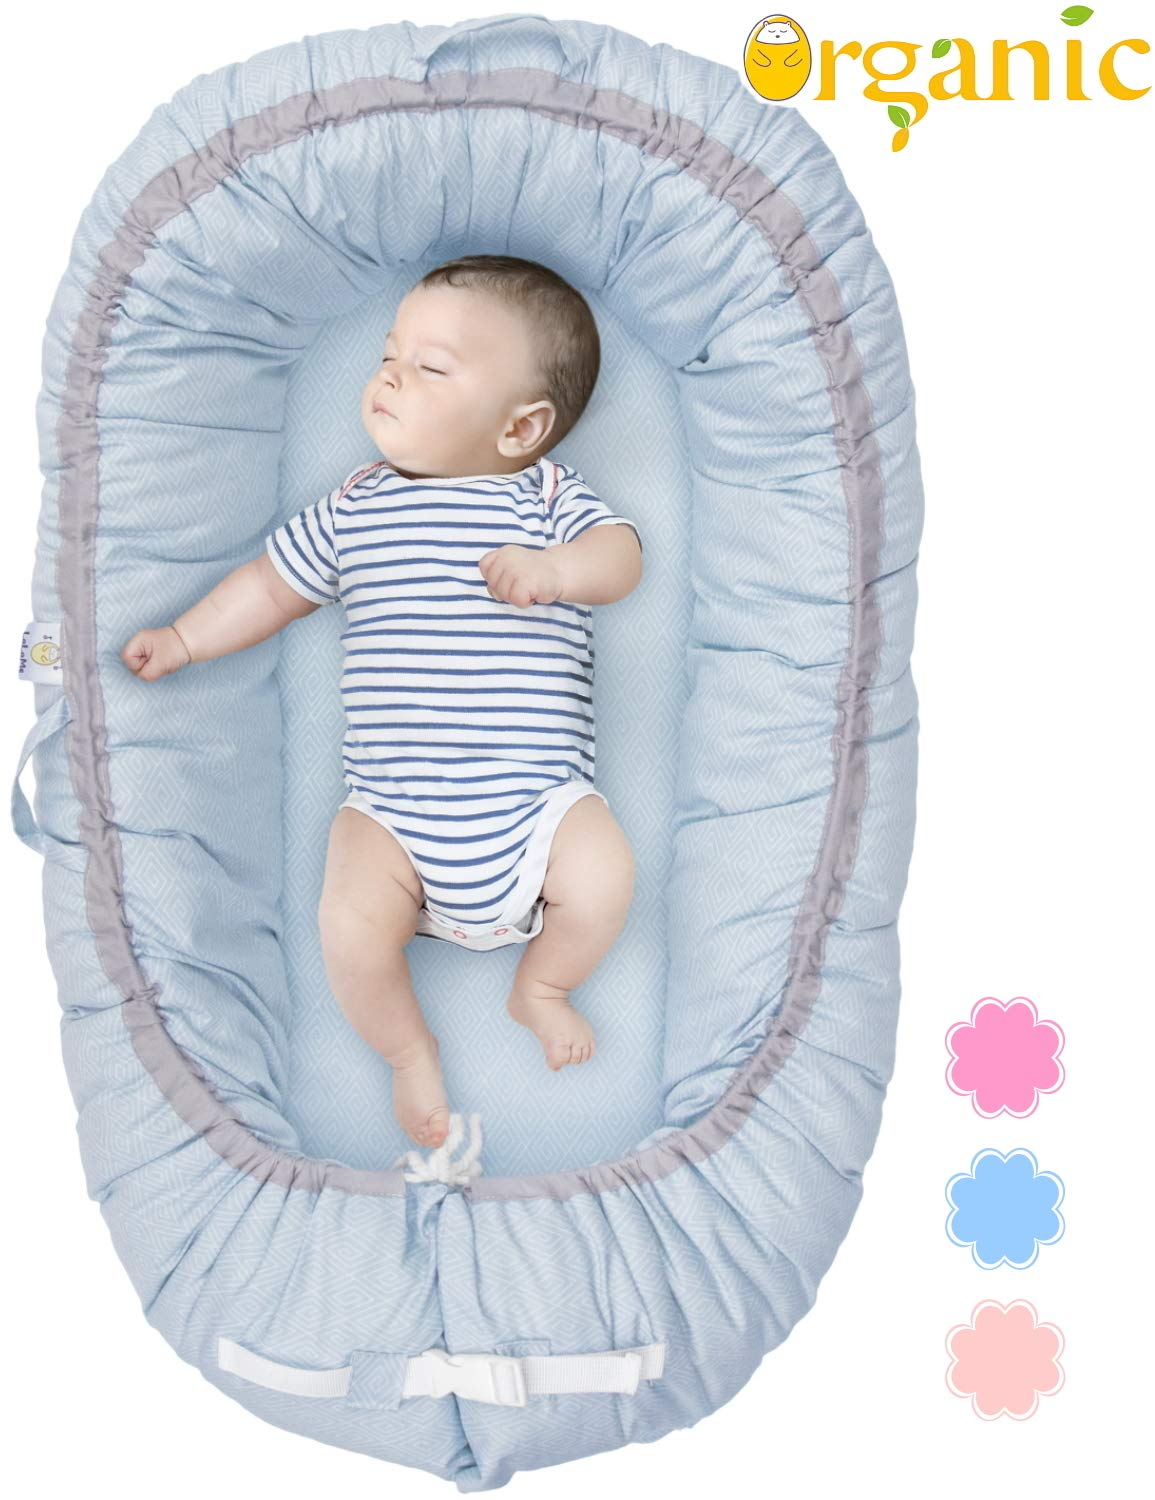 Organic Newborn Lounger Baby Snuggle Nest Portable Bed